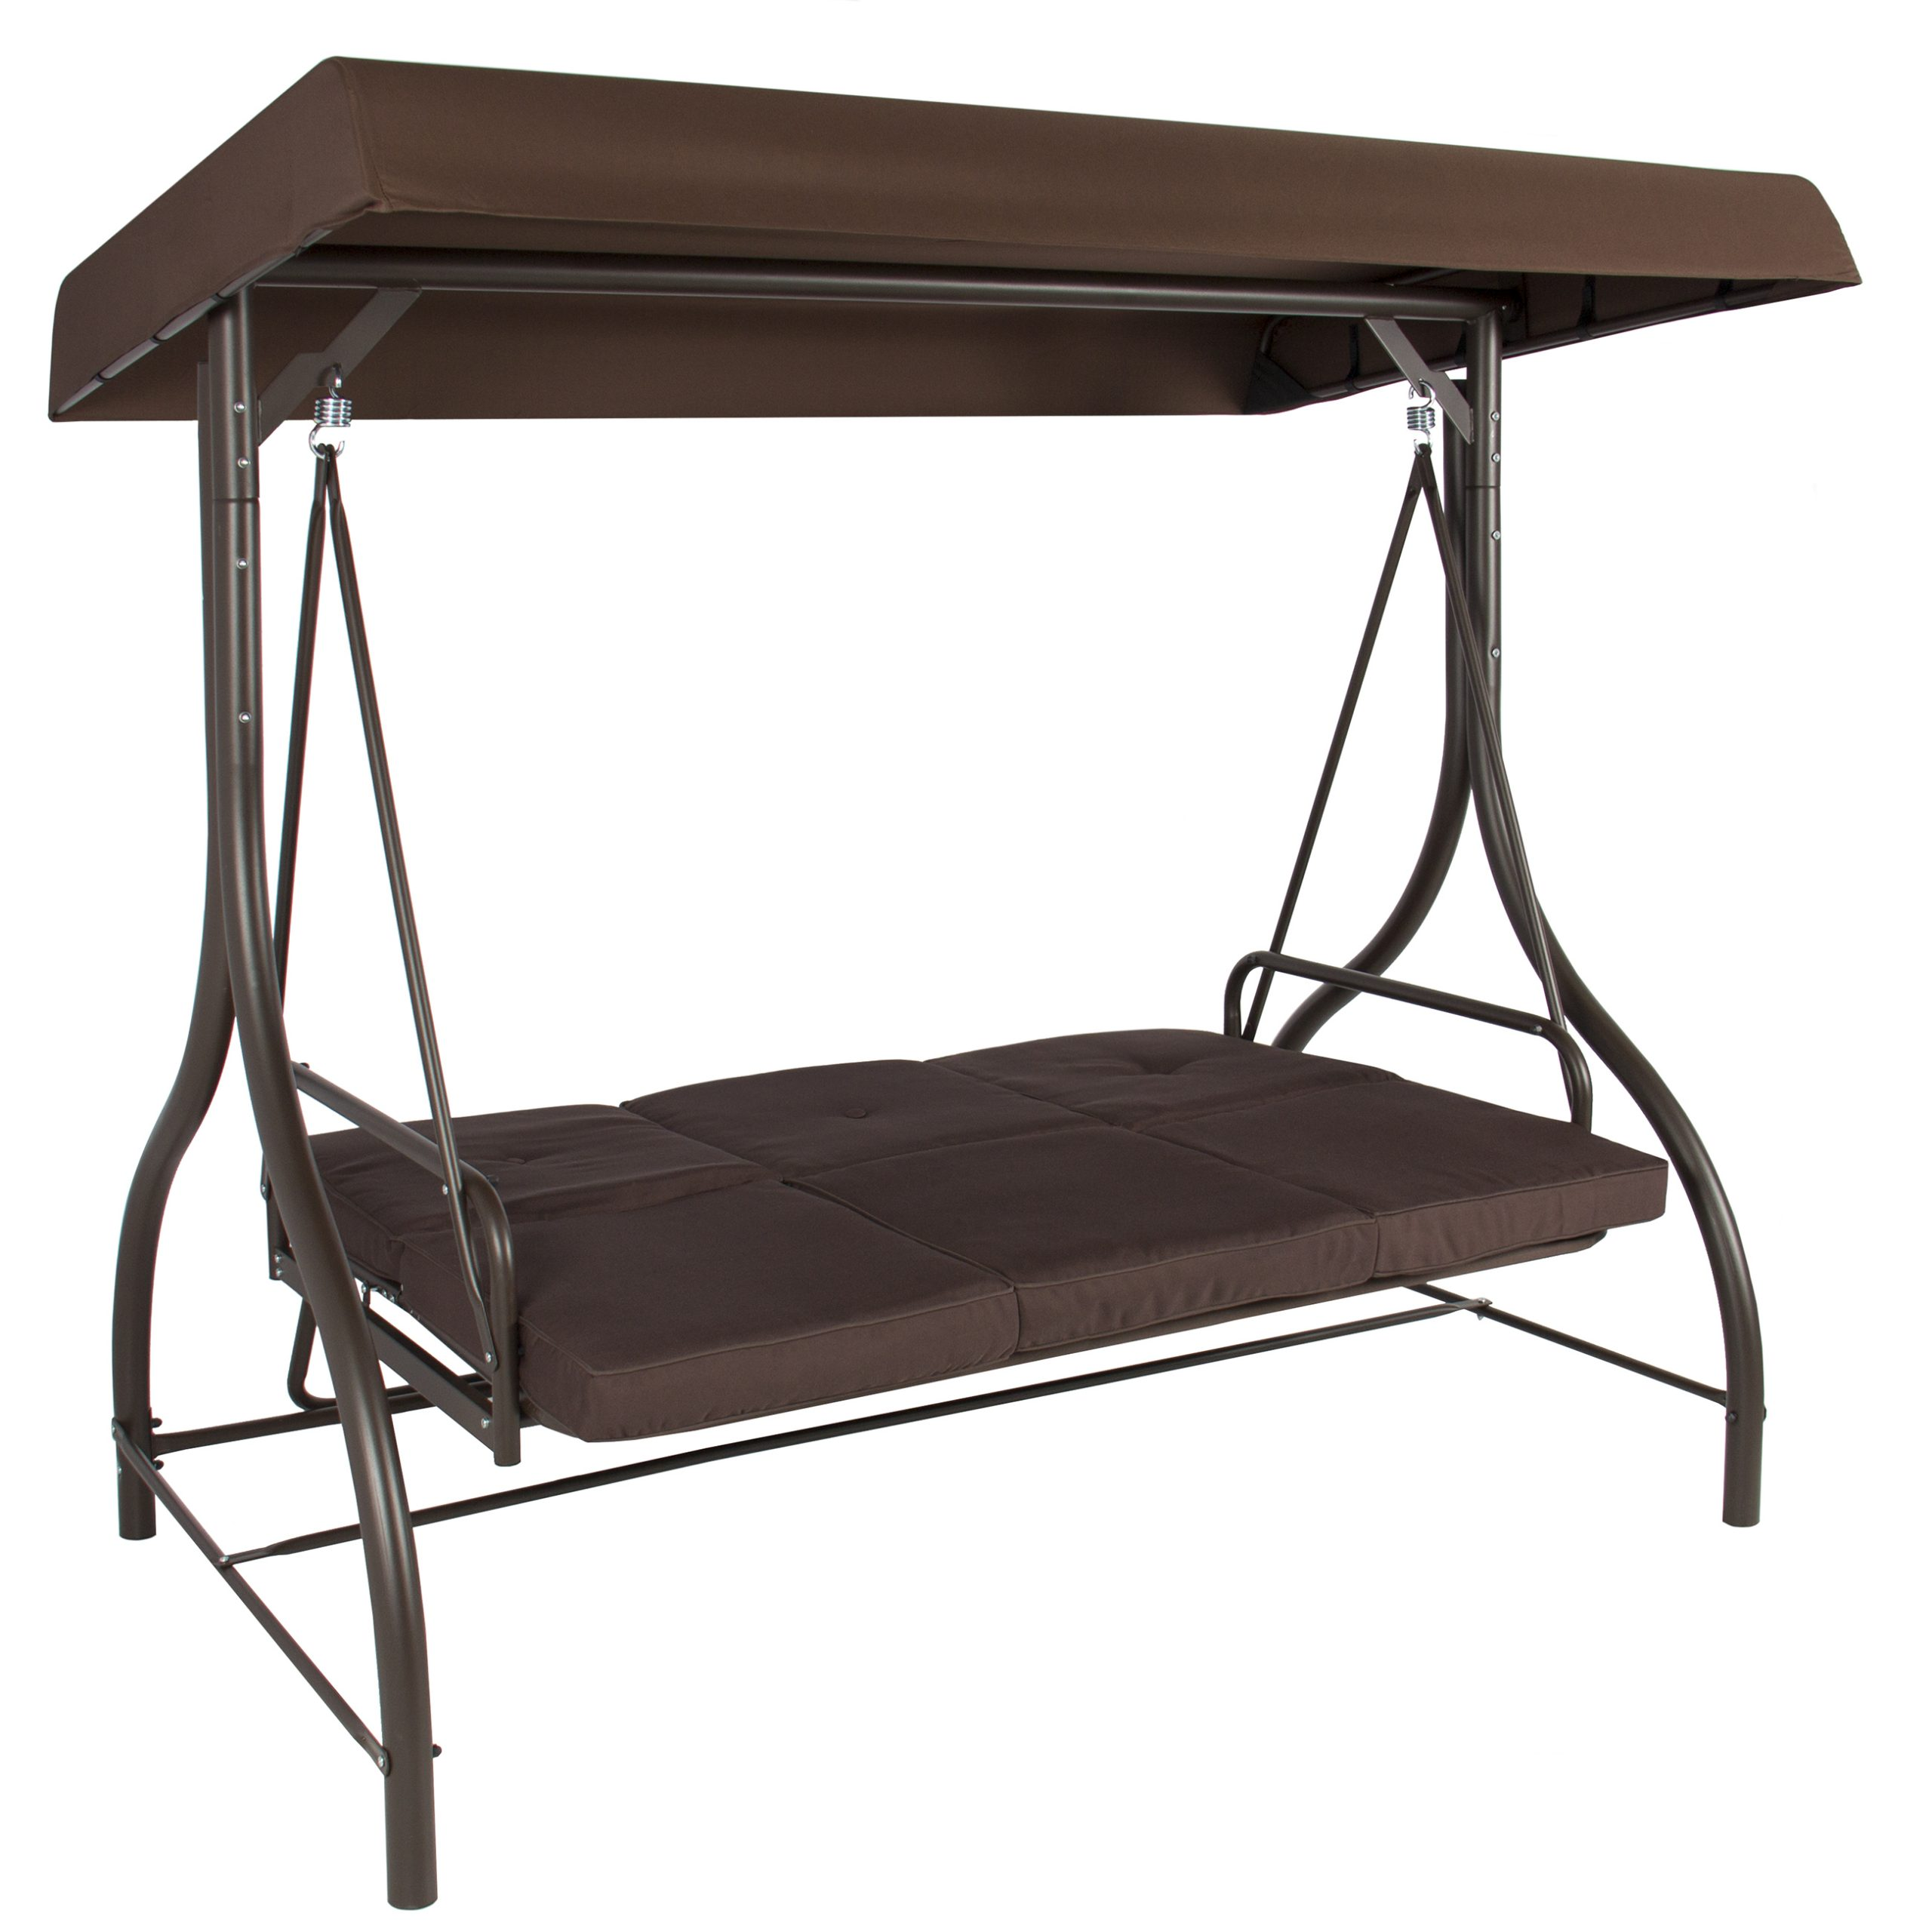 Best Choice Products 3 Person Canopy Swing – Brown Regarding 3 Person Brown Steel Outdoor Swings (View 7 of 25)